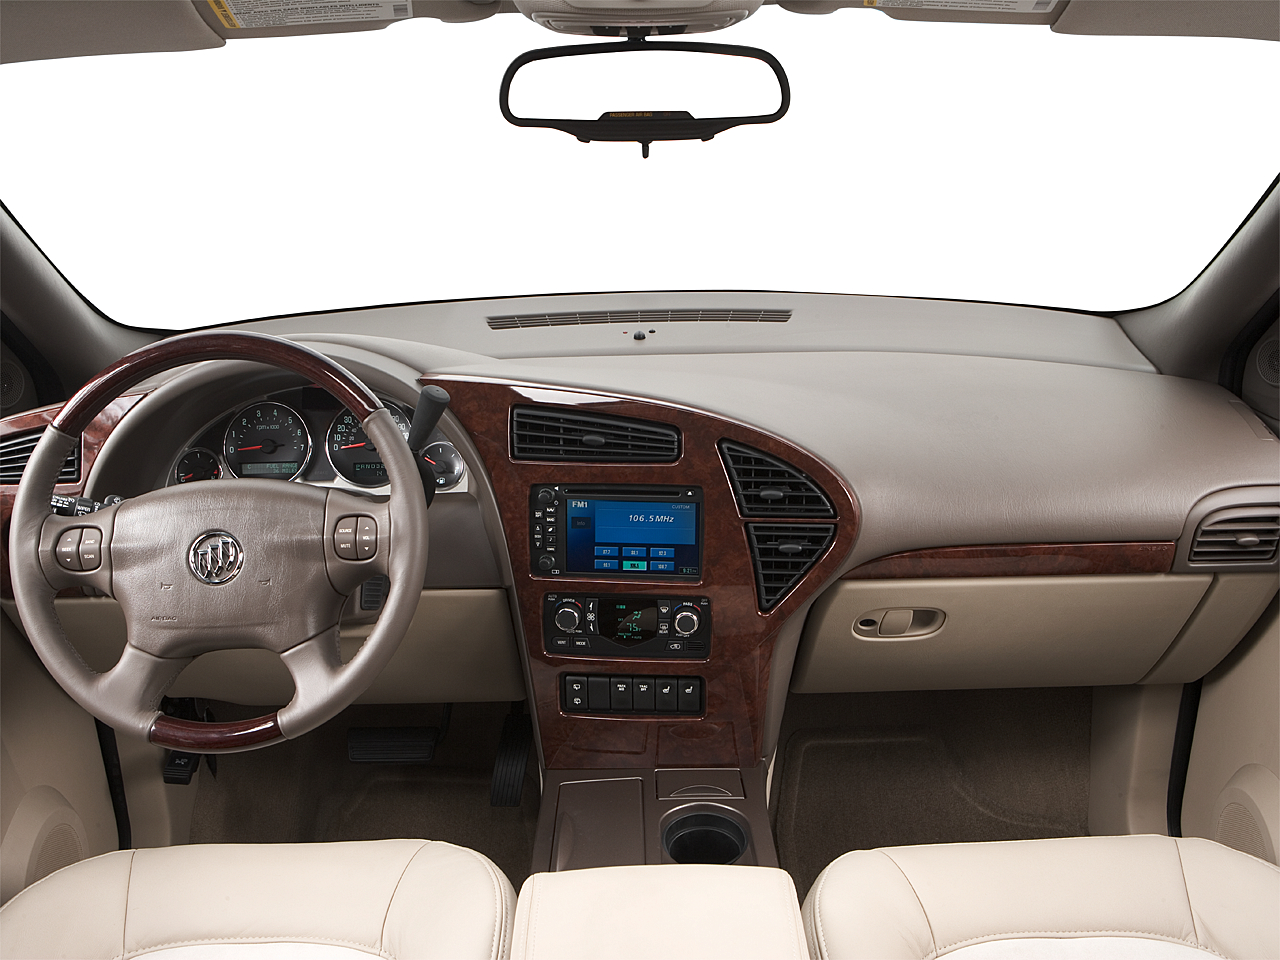 2007 Buick Rendezvous CX 4dr SUV